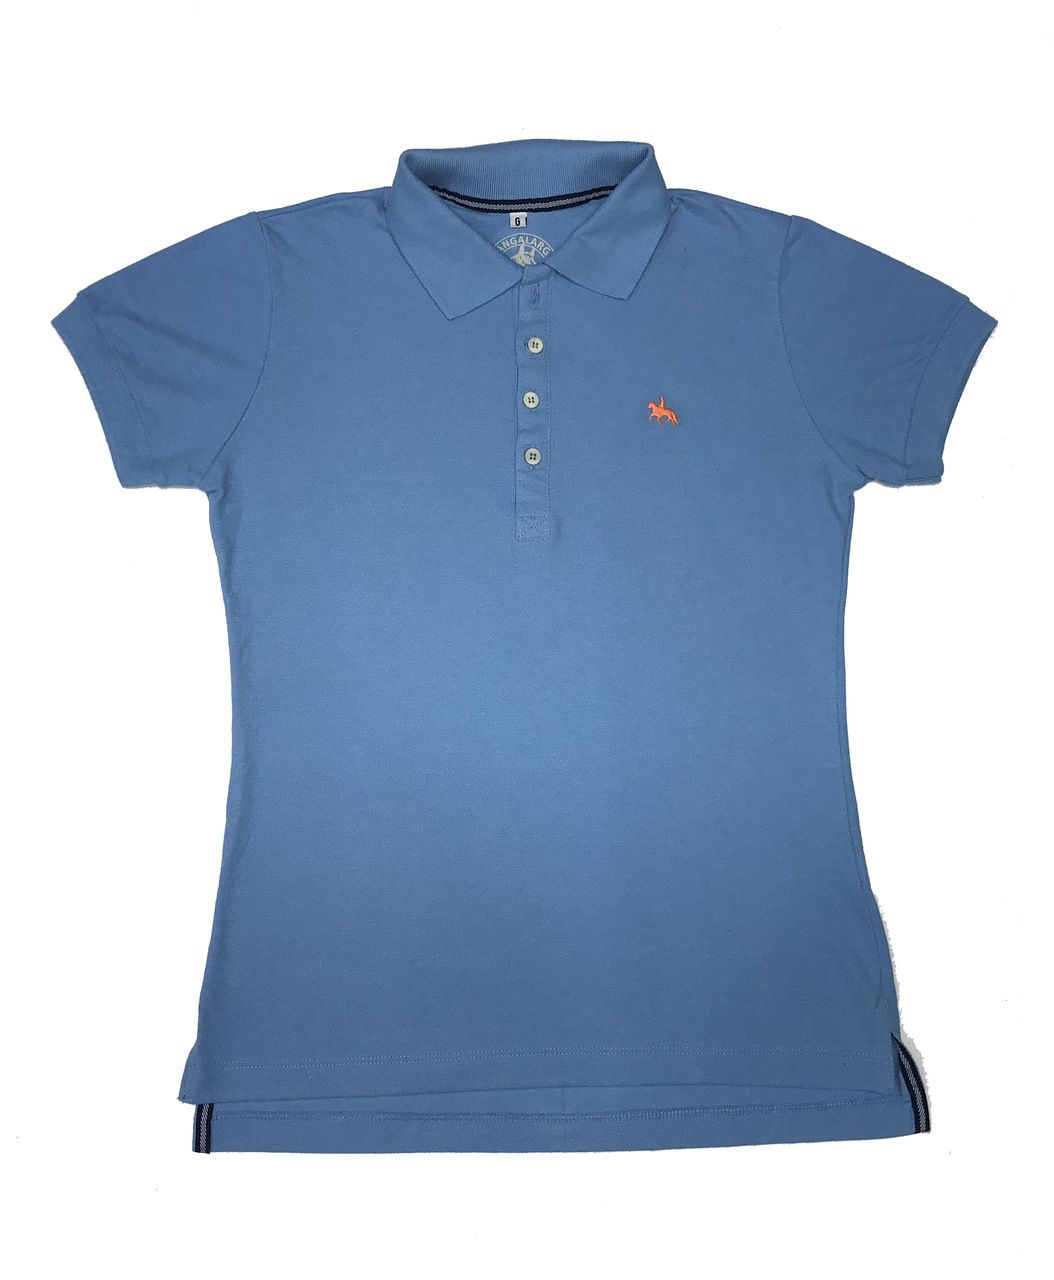 Camisa Polo Feminina   - Boutique Mangalarga